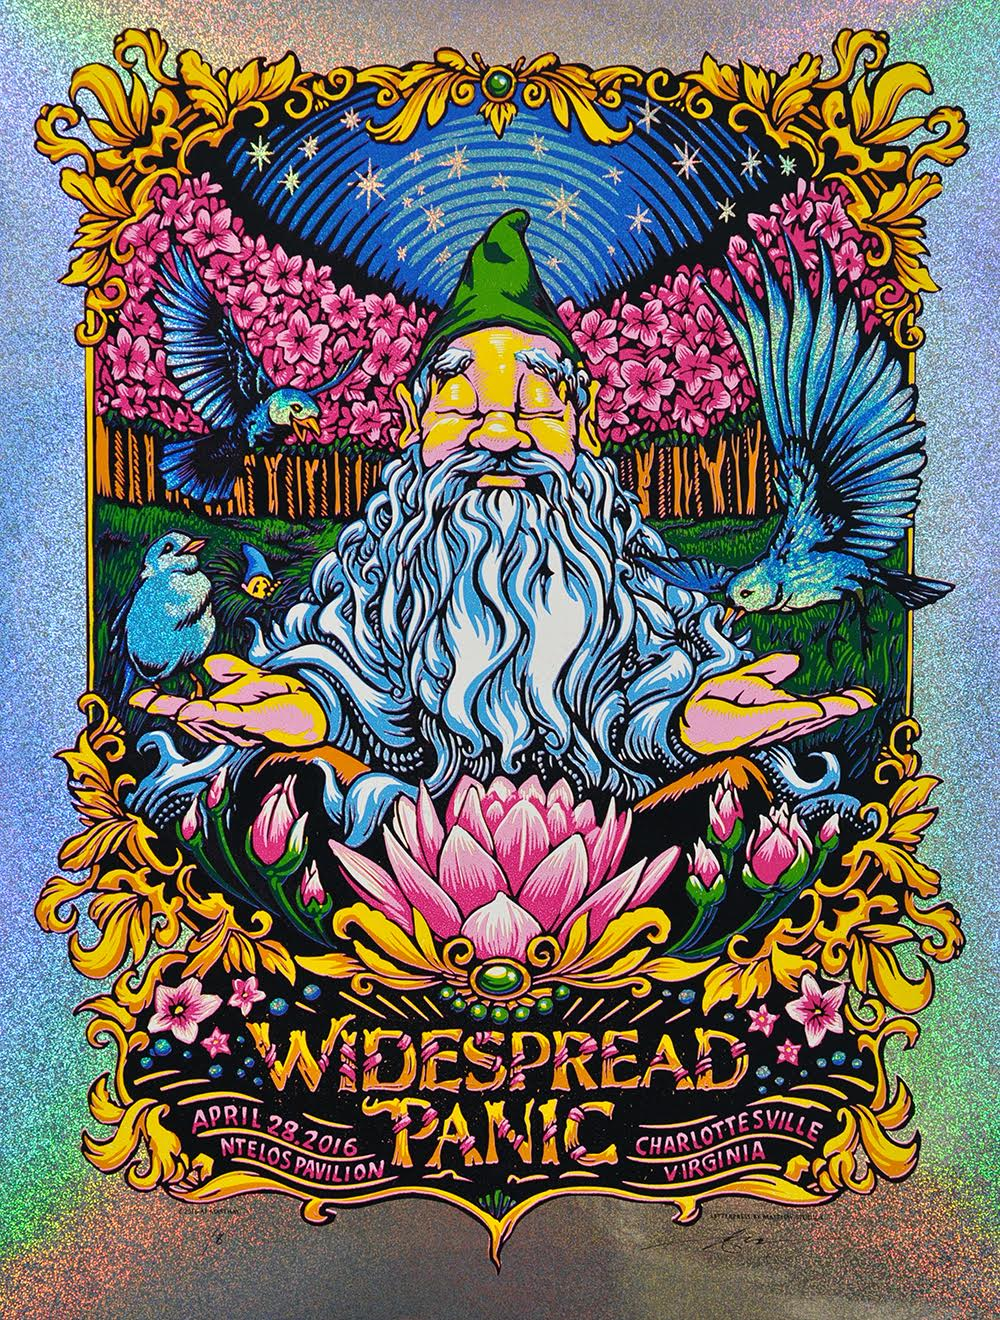 """Widespread Panic - Charlottesville, VA 2016"" by AJ Masthay.  18"" x 24"" 9-color Linoleum Block.  Ed of 8 S/N.  $125 (Sparkle Foil)"